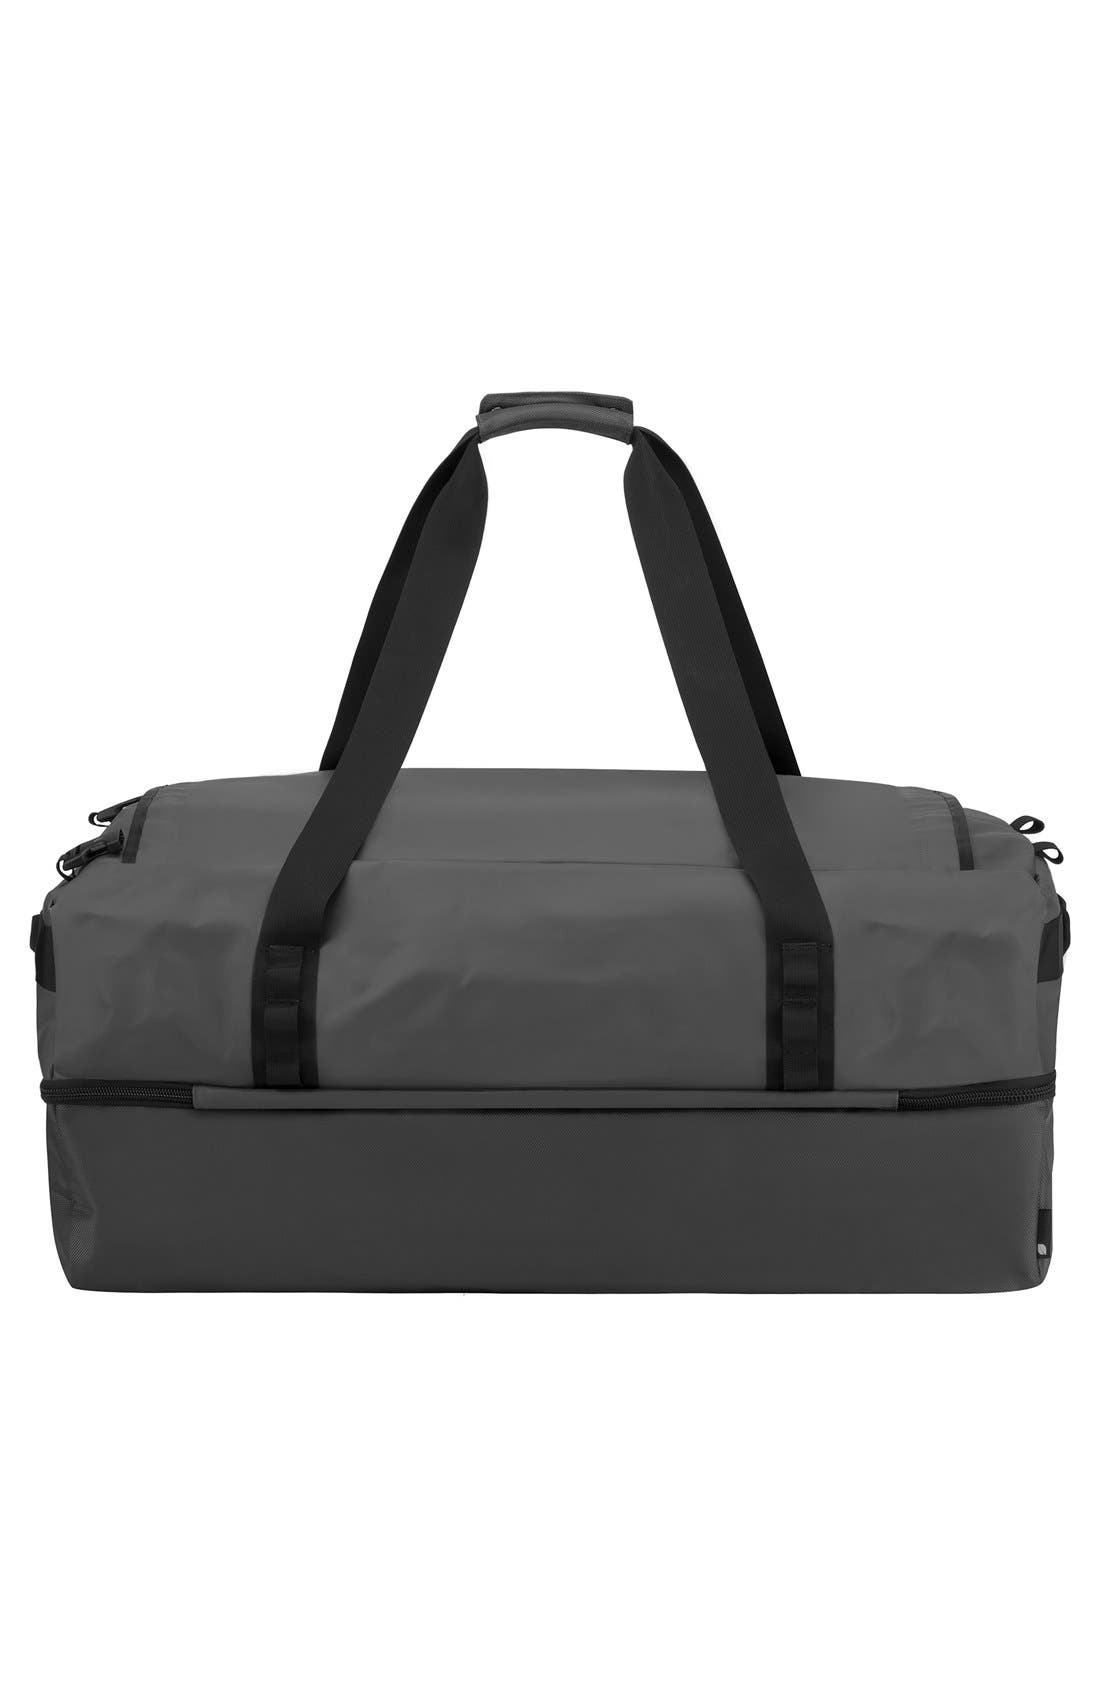 TRACTO Extra Large Split Convertible Duffel Bag,                             Alternate thumbnail 3, color,                             001